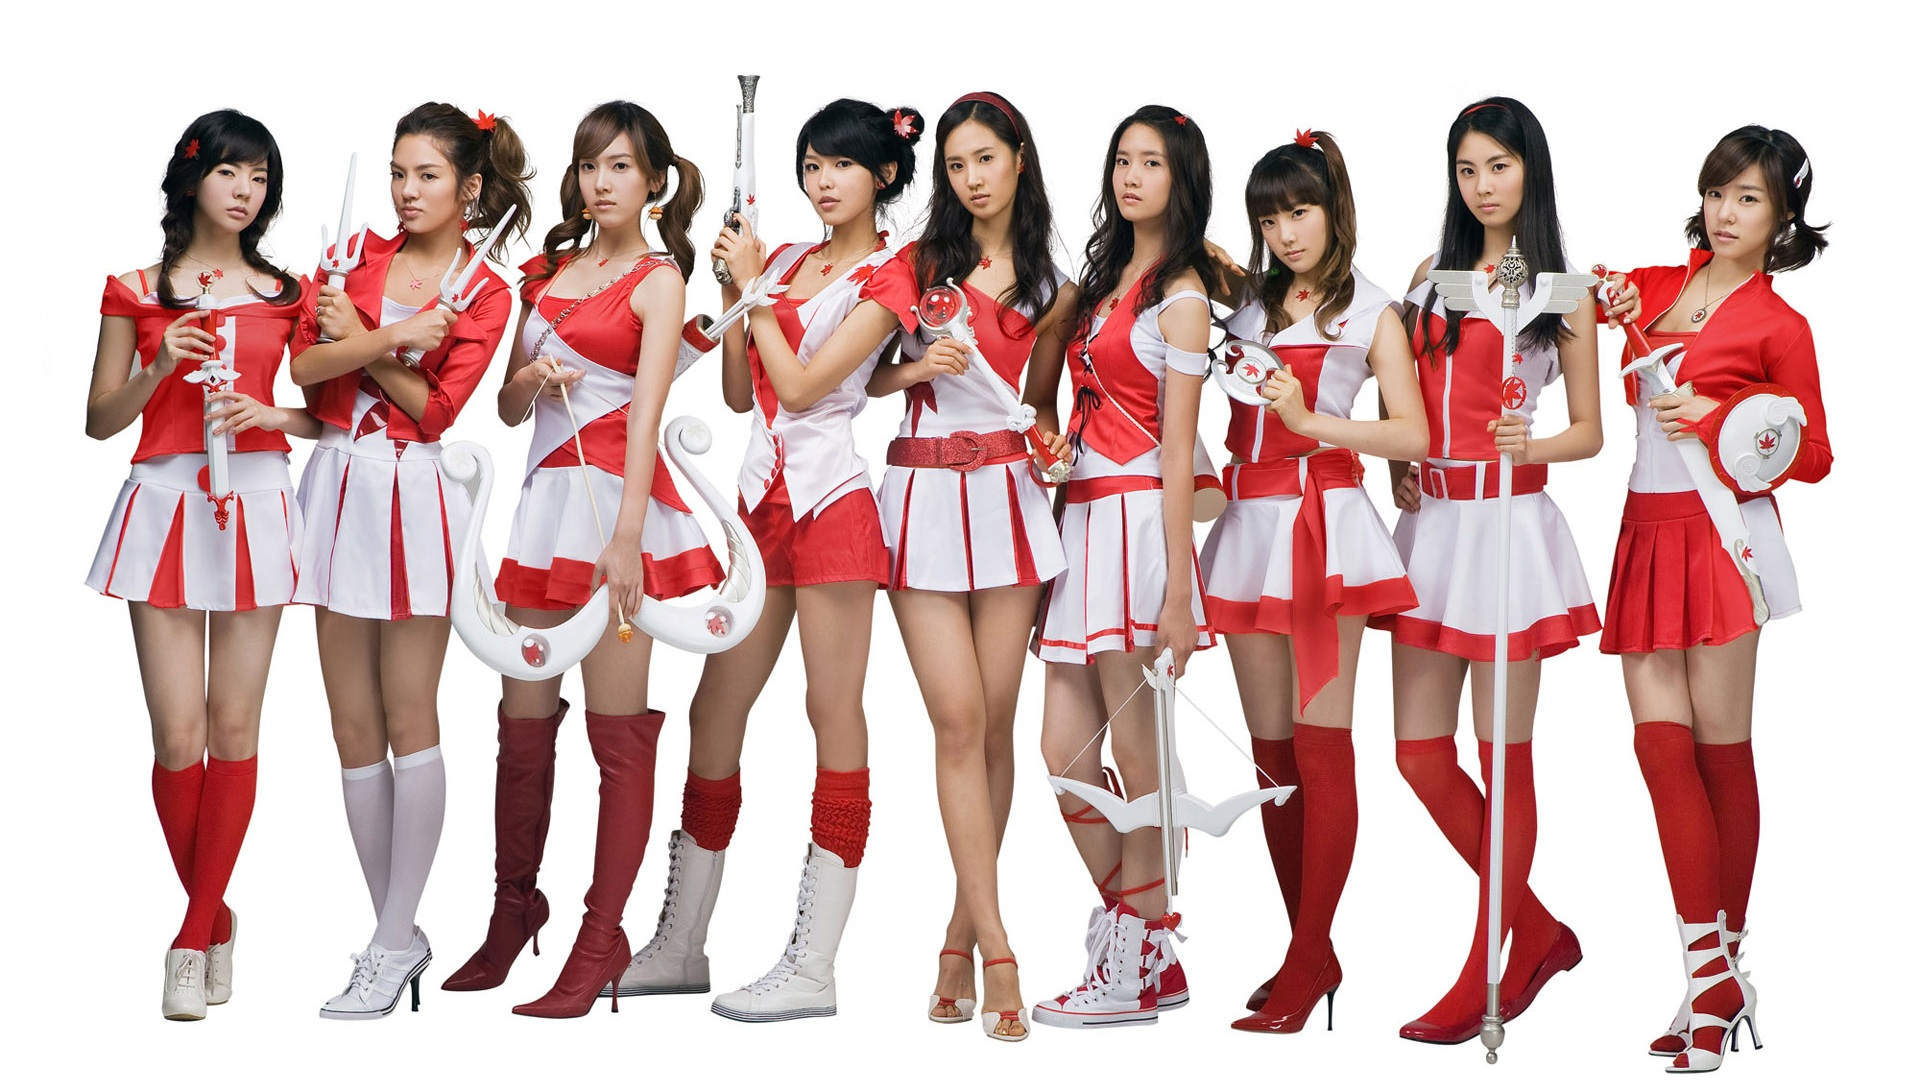 Wallpaper Girls Generation 07 1920x1200 Hd Picture Image